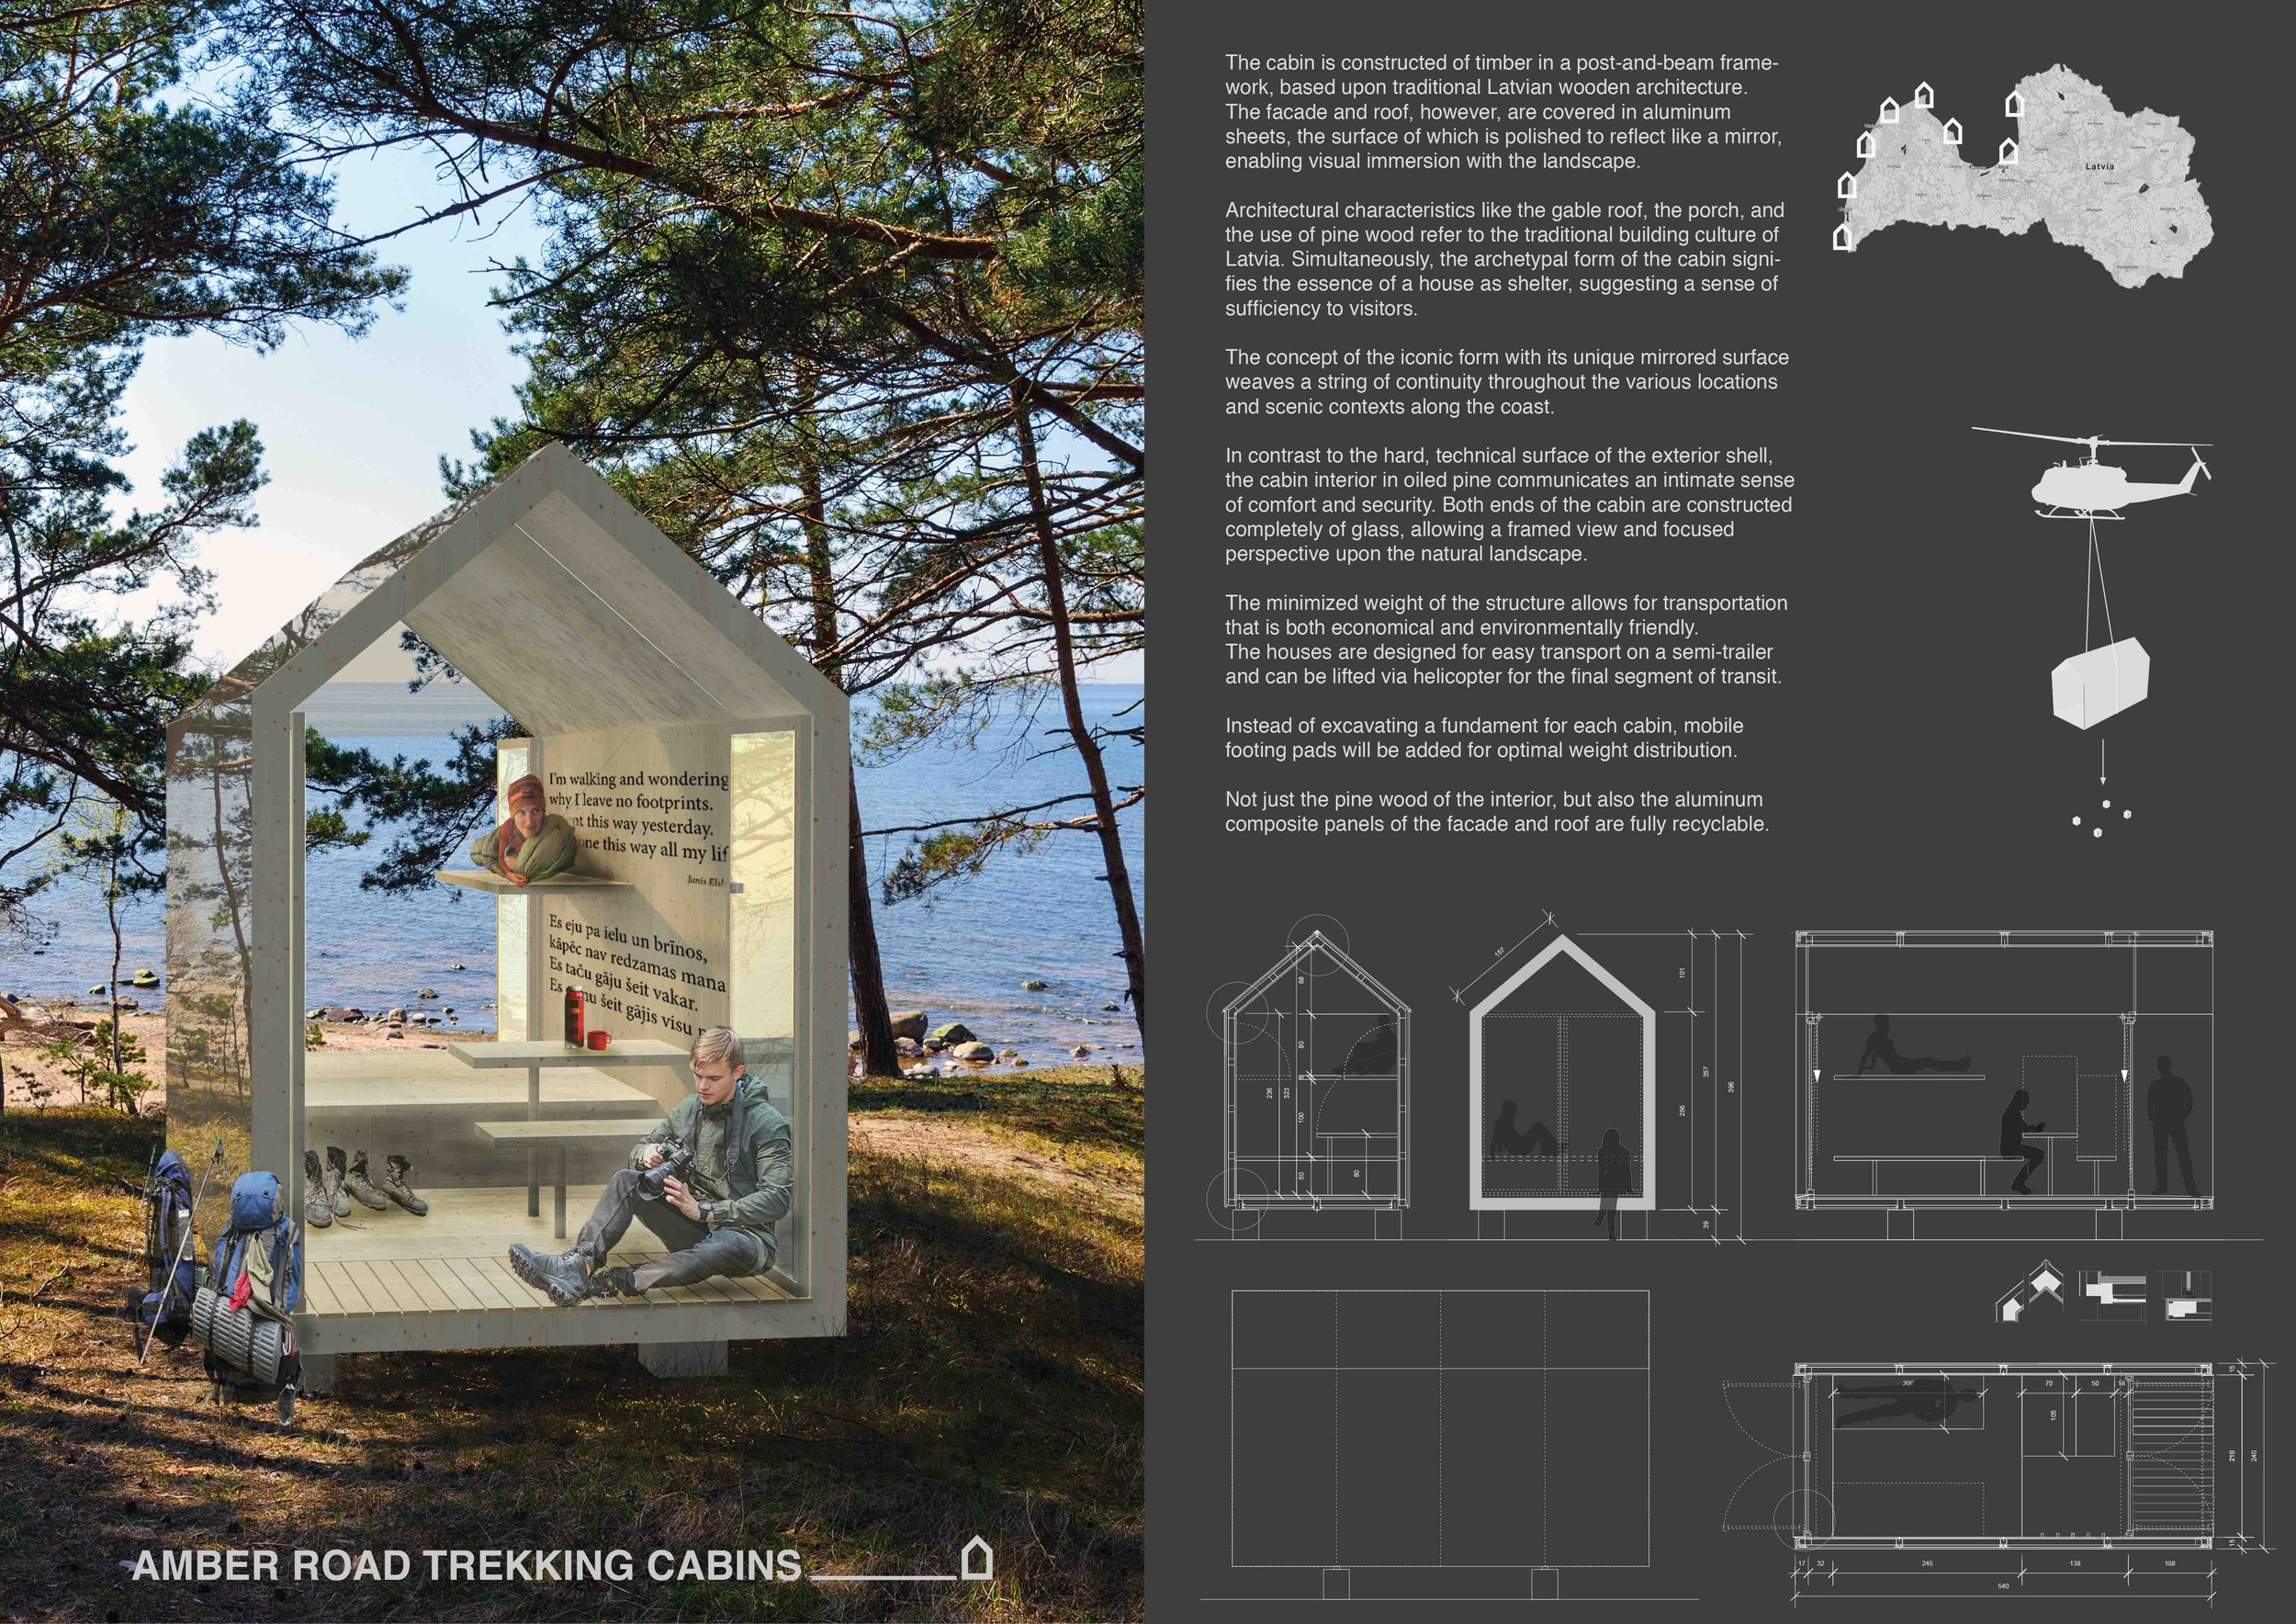 AMBER ROAD TREKKING CABINS / Latvia — element design